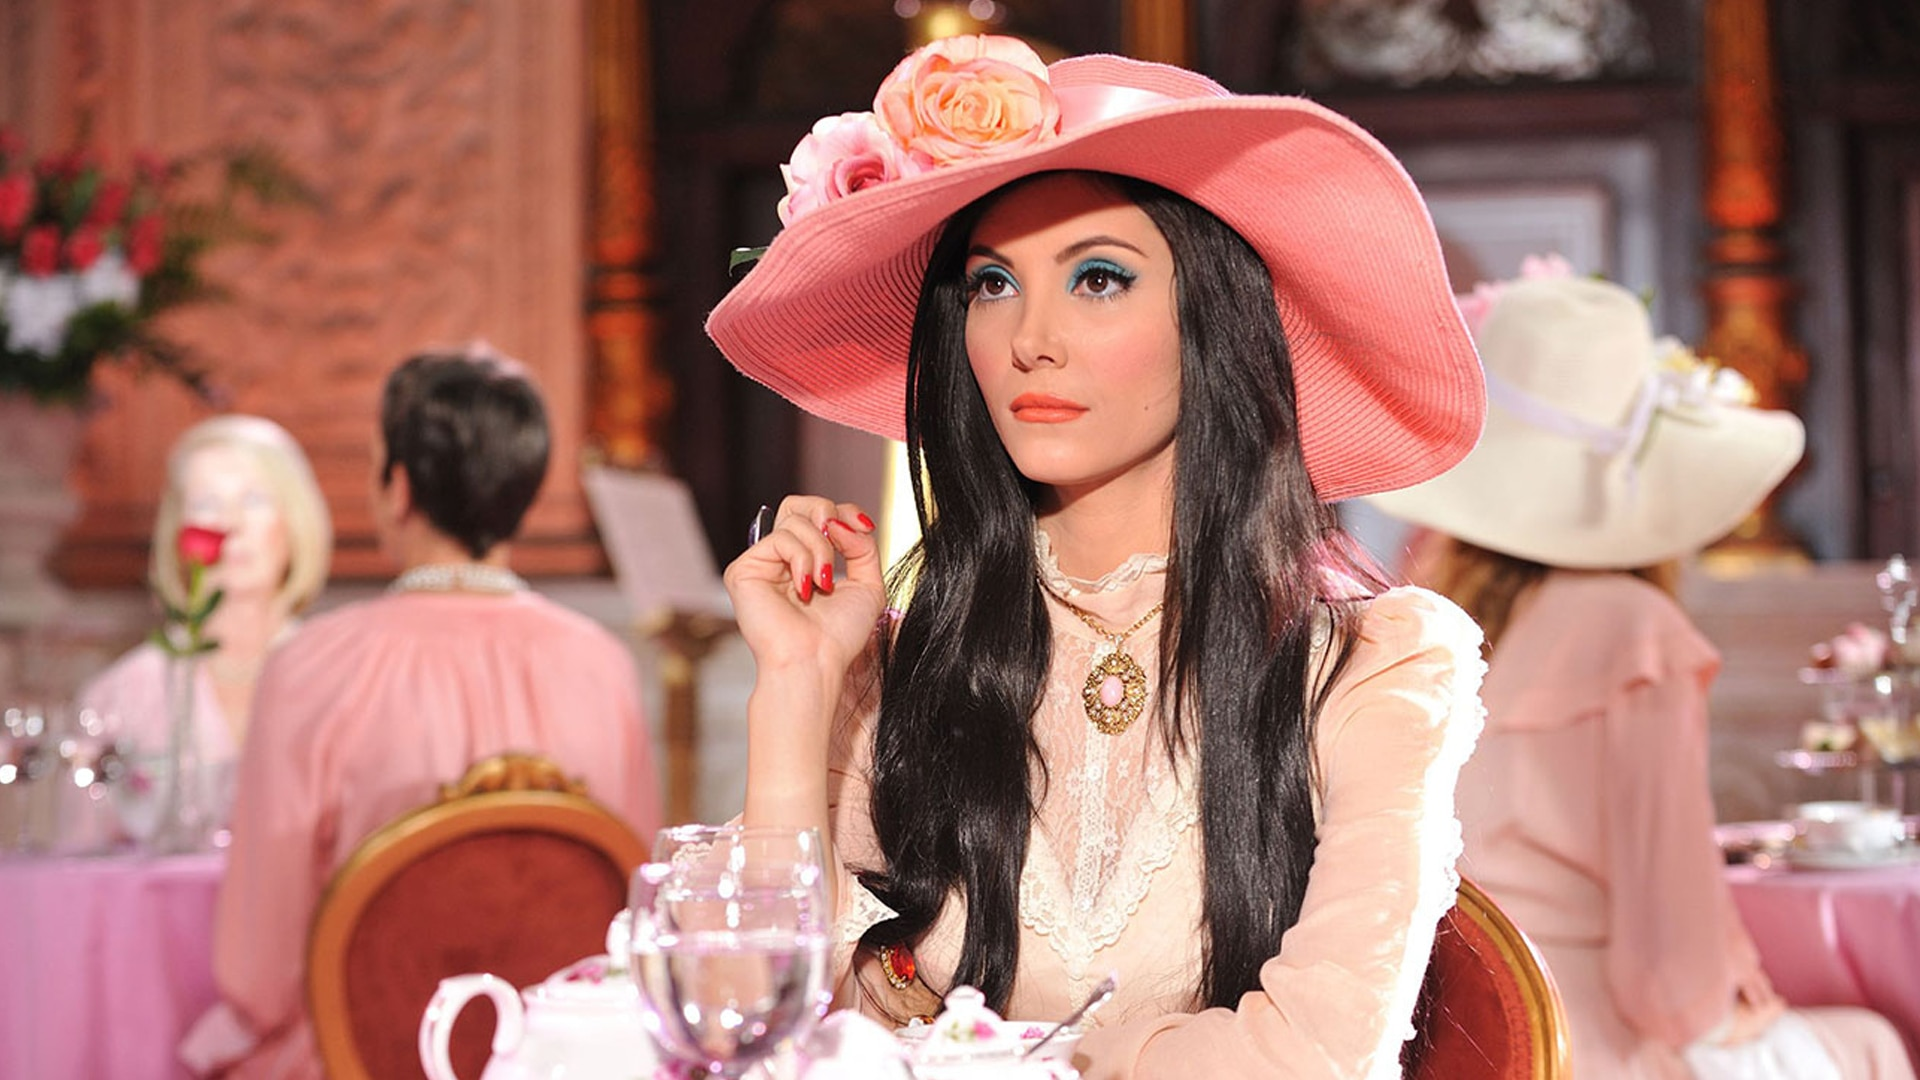 The Love Witch on Film4